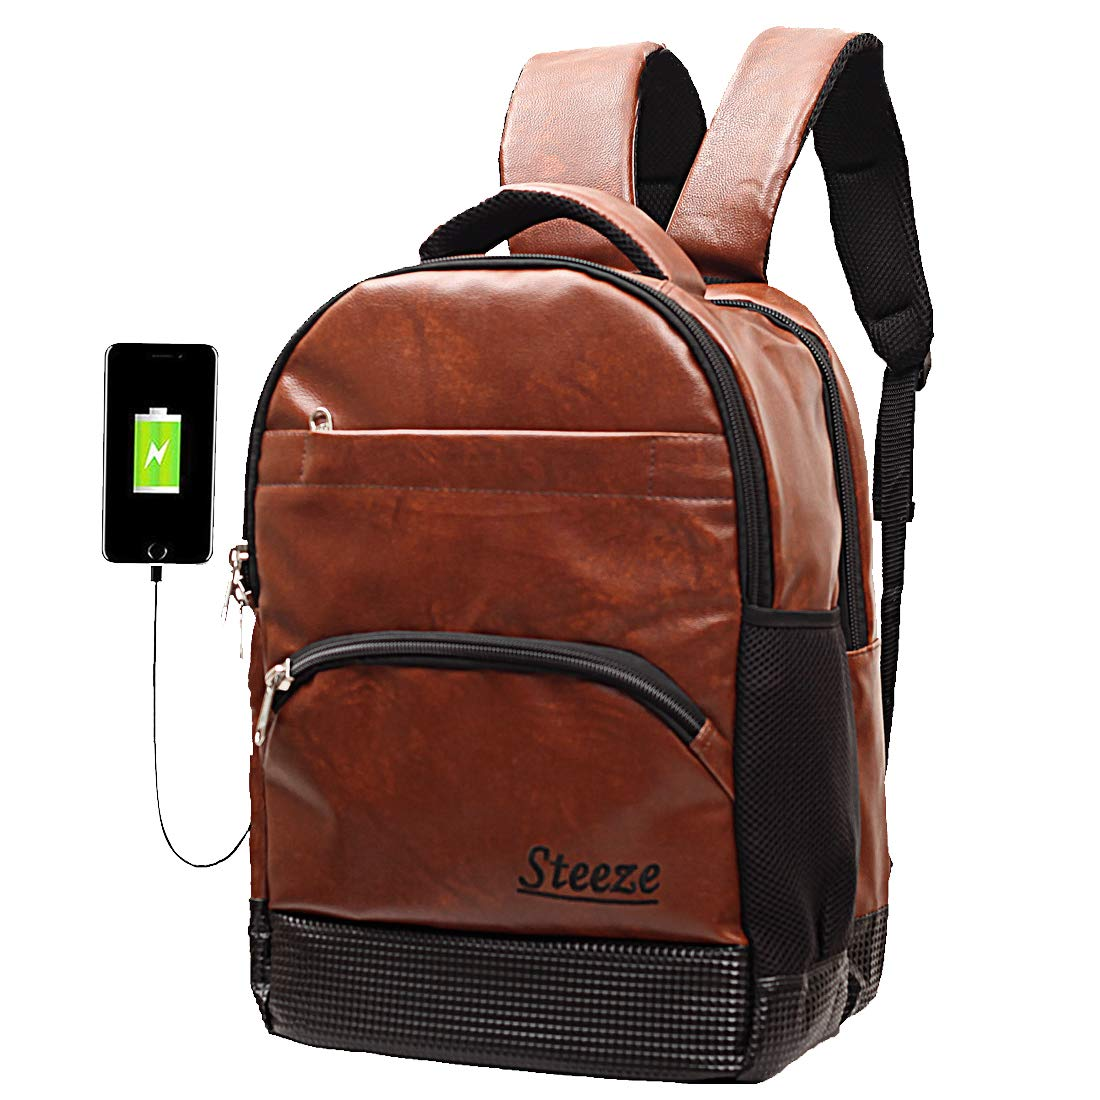 STEEZE Anti Theft 30 L Laptop Backpack with Lock USB Charging Port